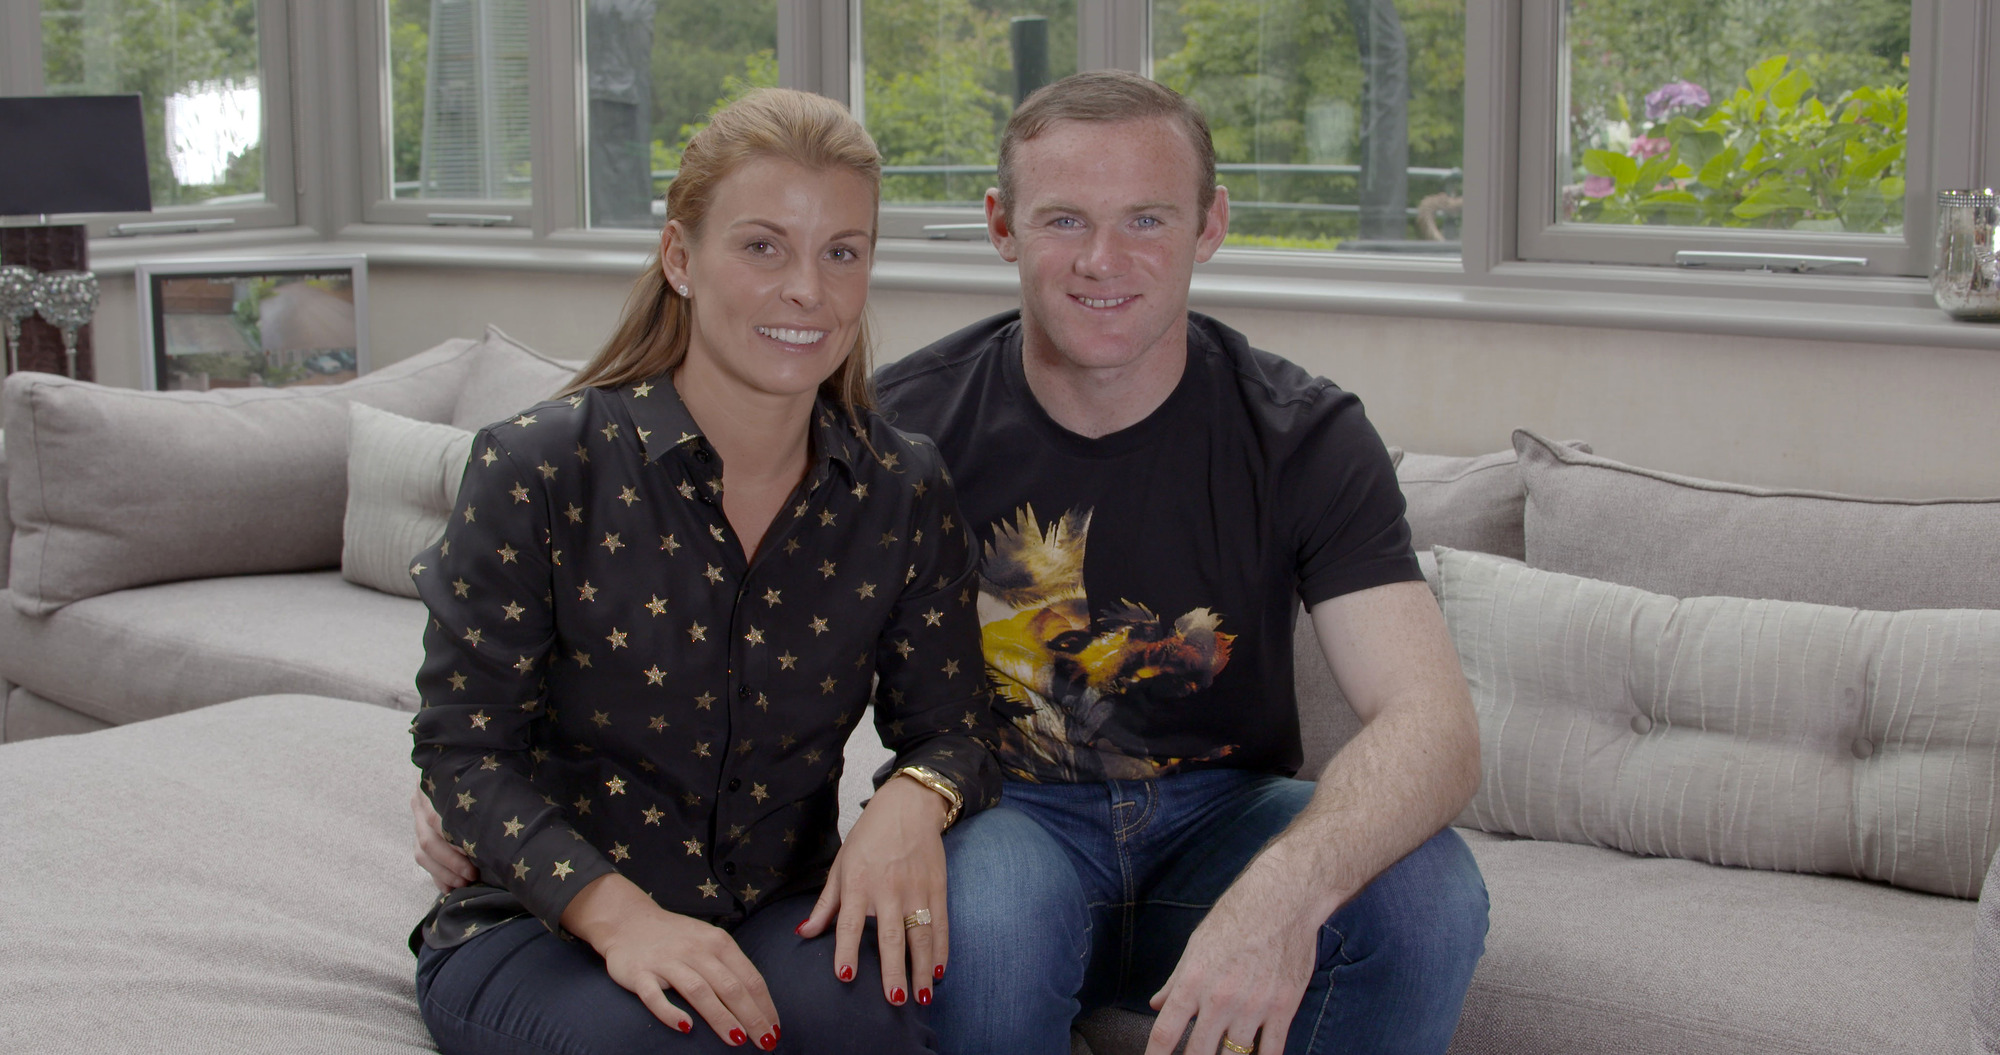 Wayne Rooney - The Man Behind the Goals